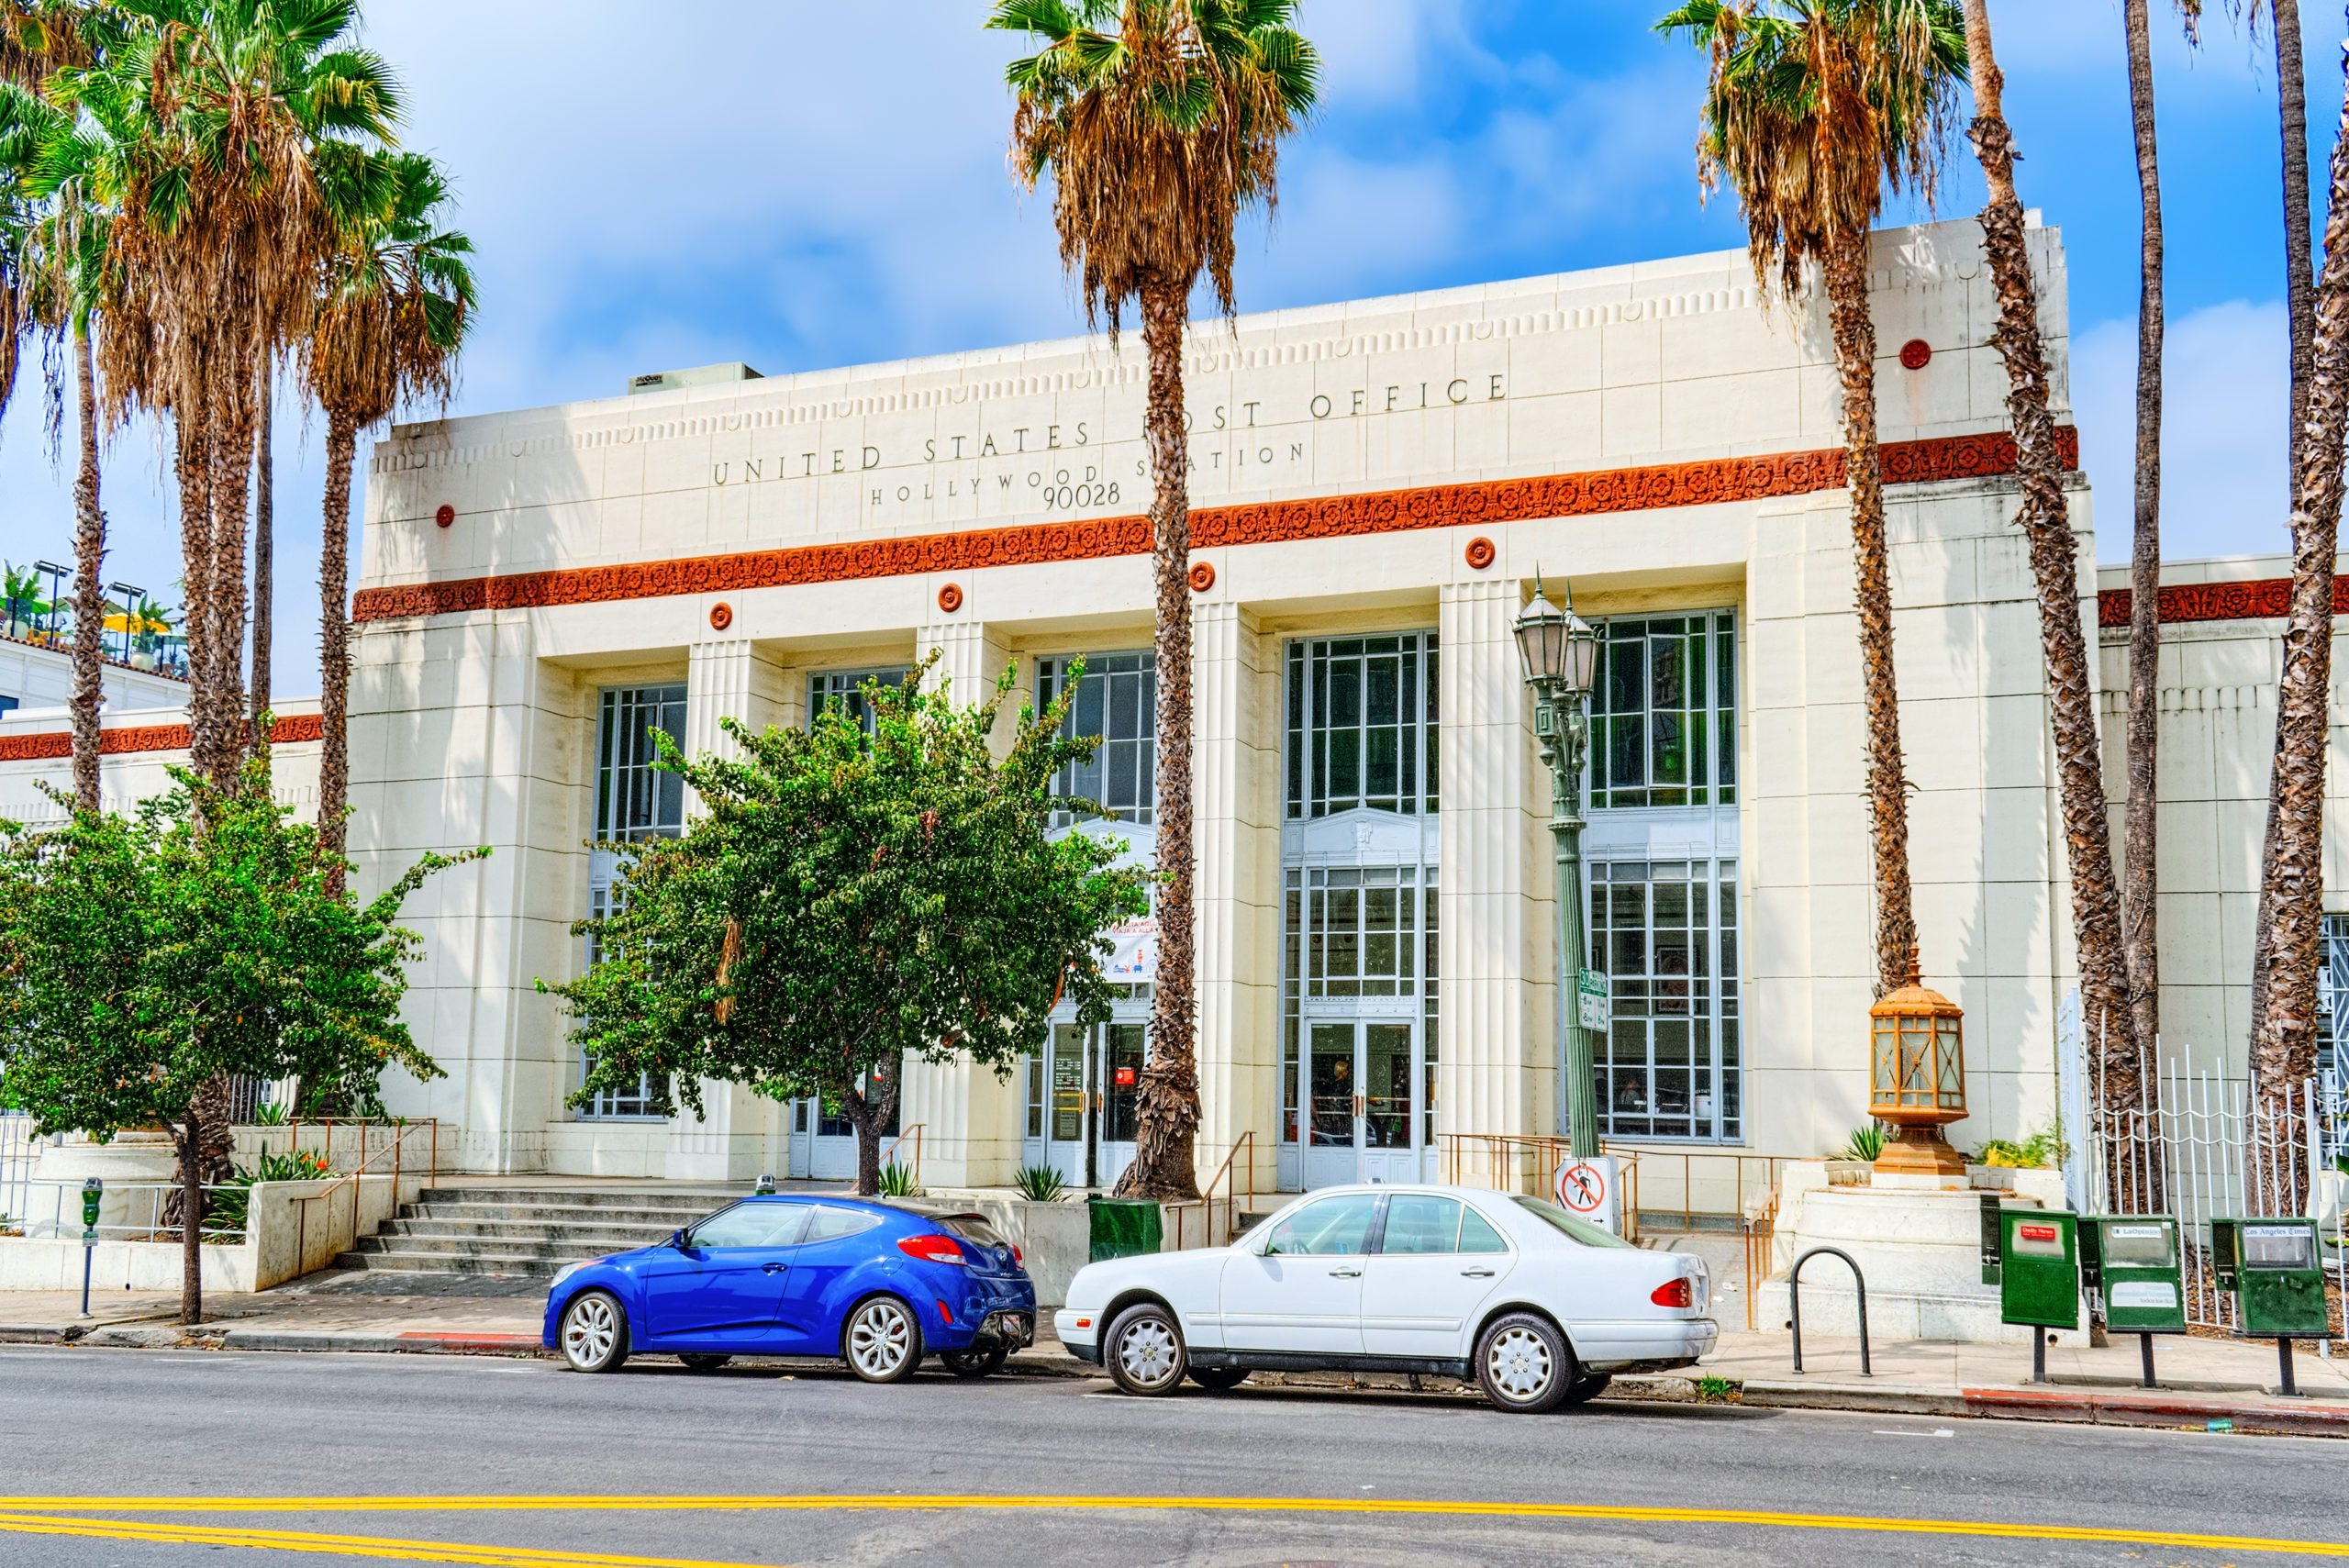 United States Post Office on Hollywood Boulevard in Hollywood.